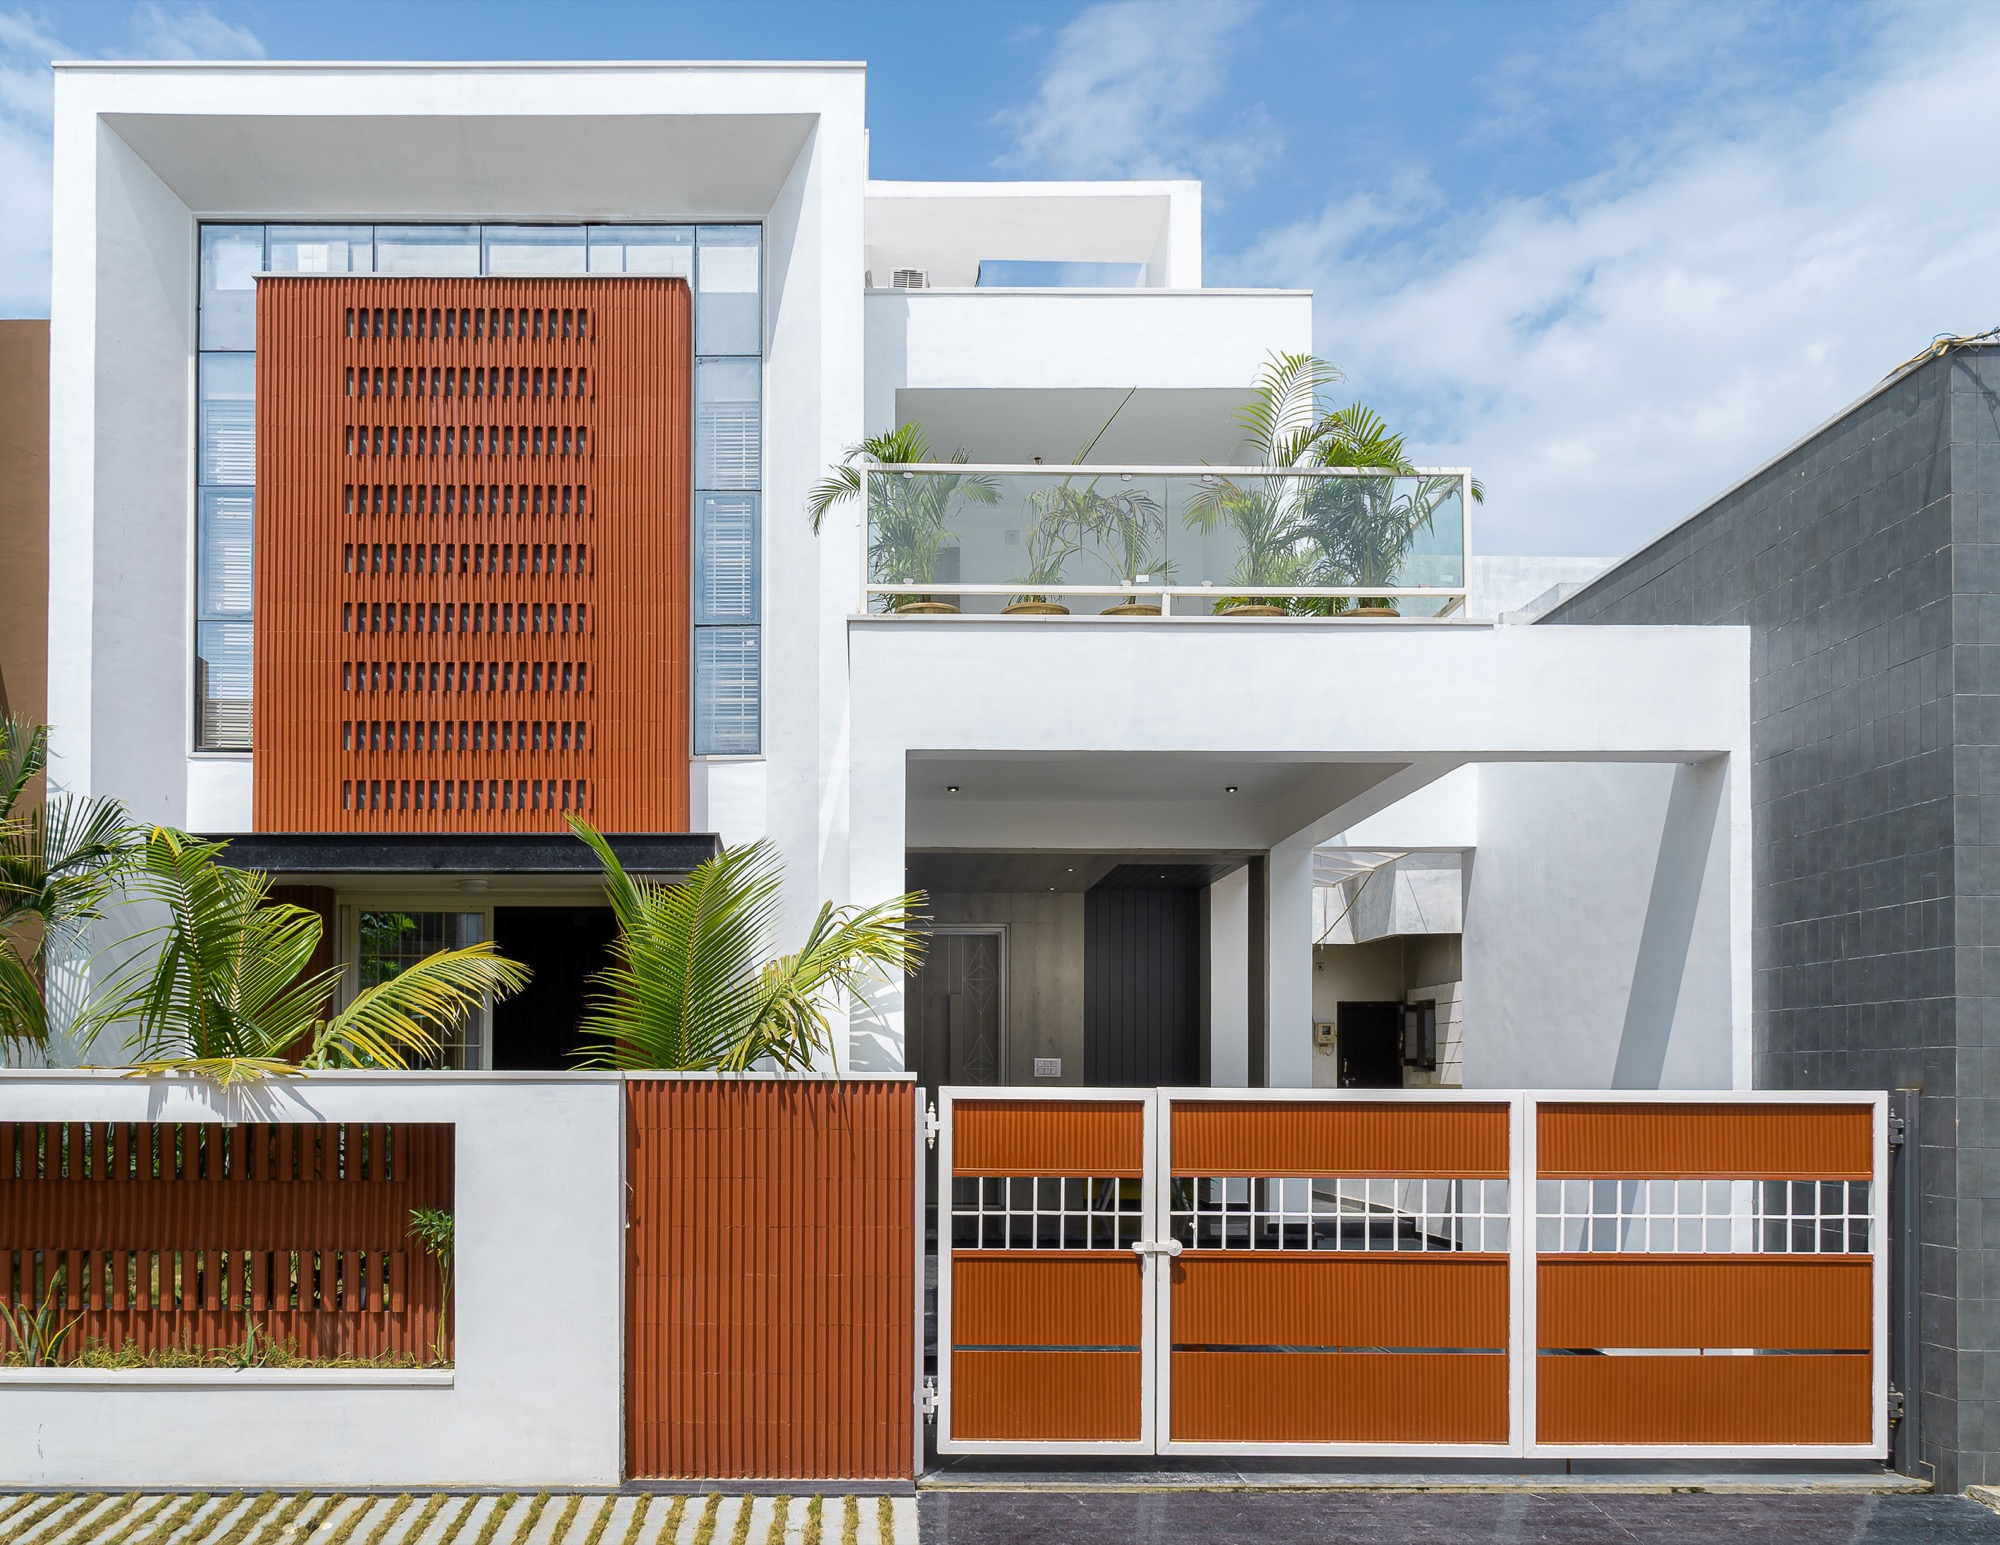 Manoj Patel Design Studio Reuses The Clay Roof Tiles In Vadodara Residence To Minimize The Glare From Direct Sun Light Architecturelive